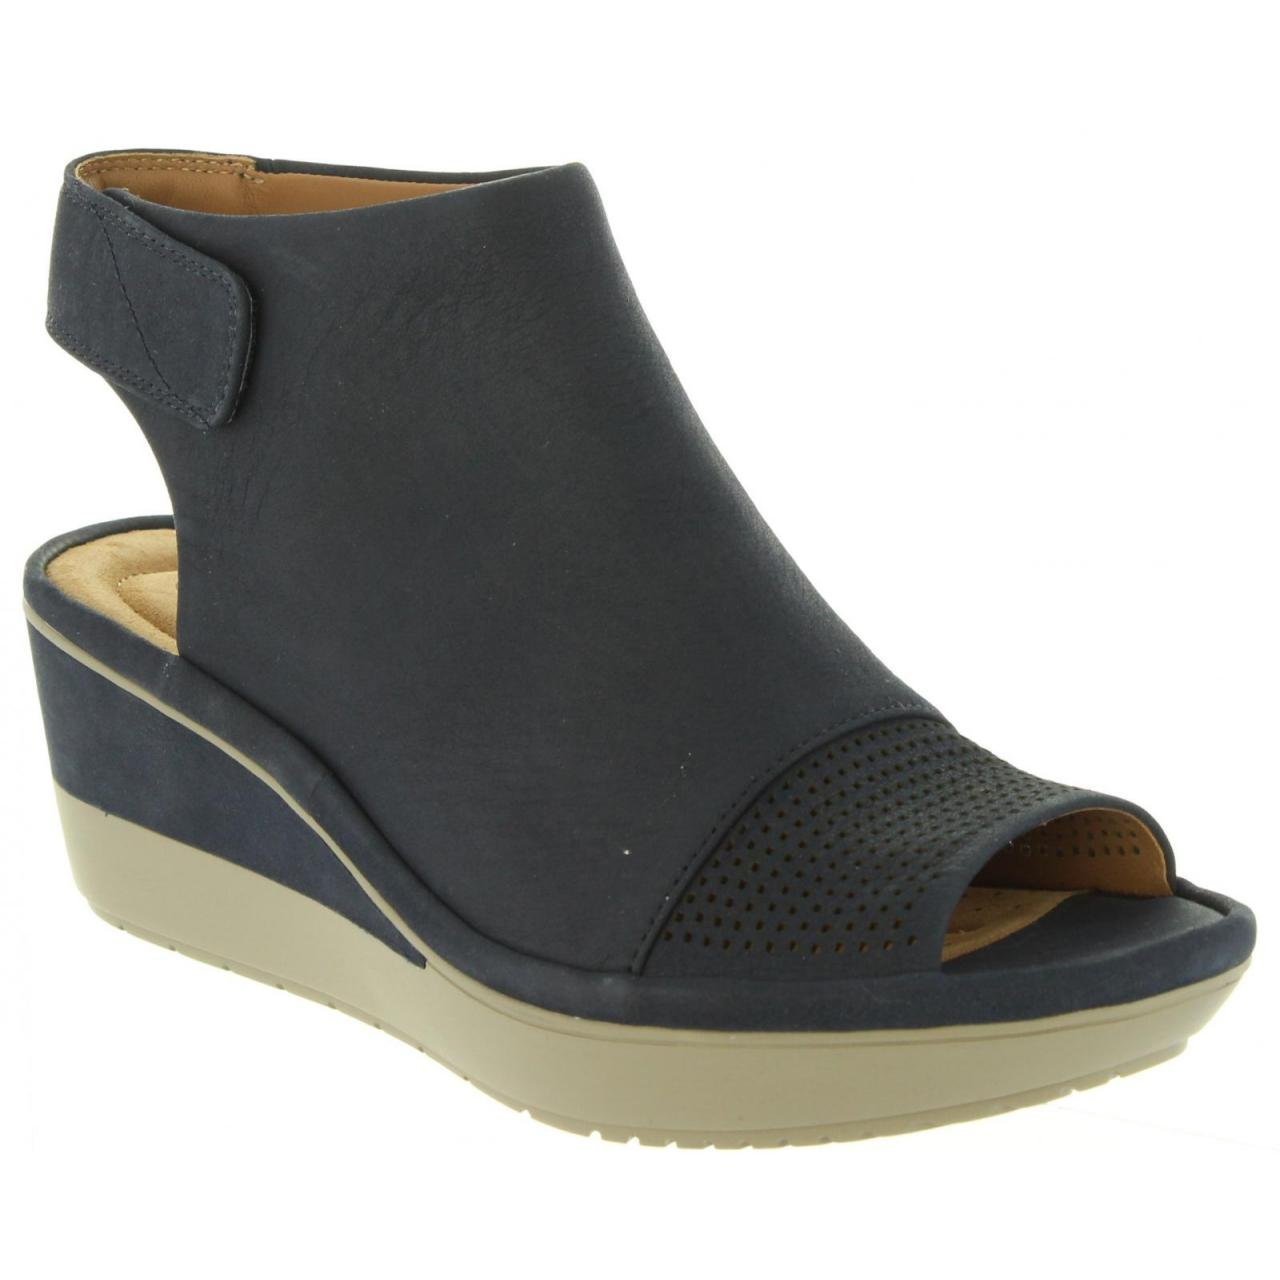 Clarks Chaussures compensées pour Femme 26133983 WYNNMERE